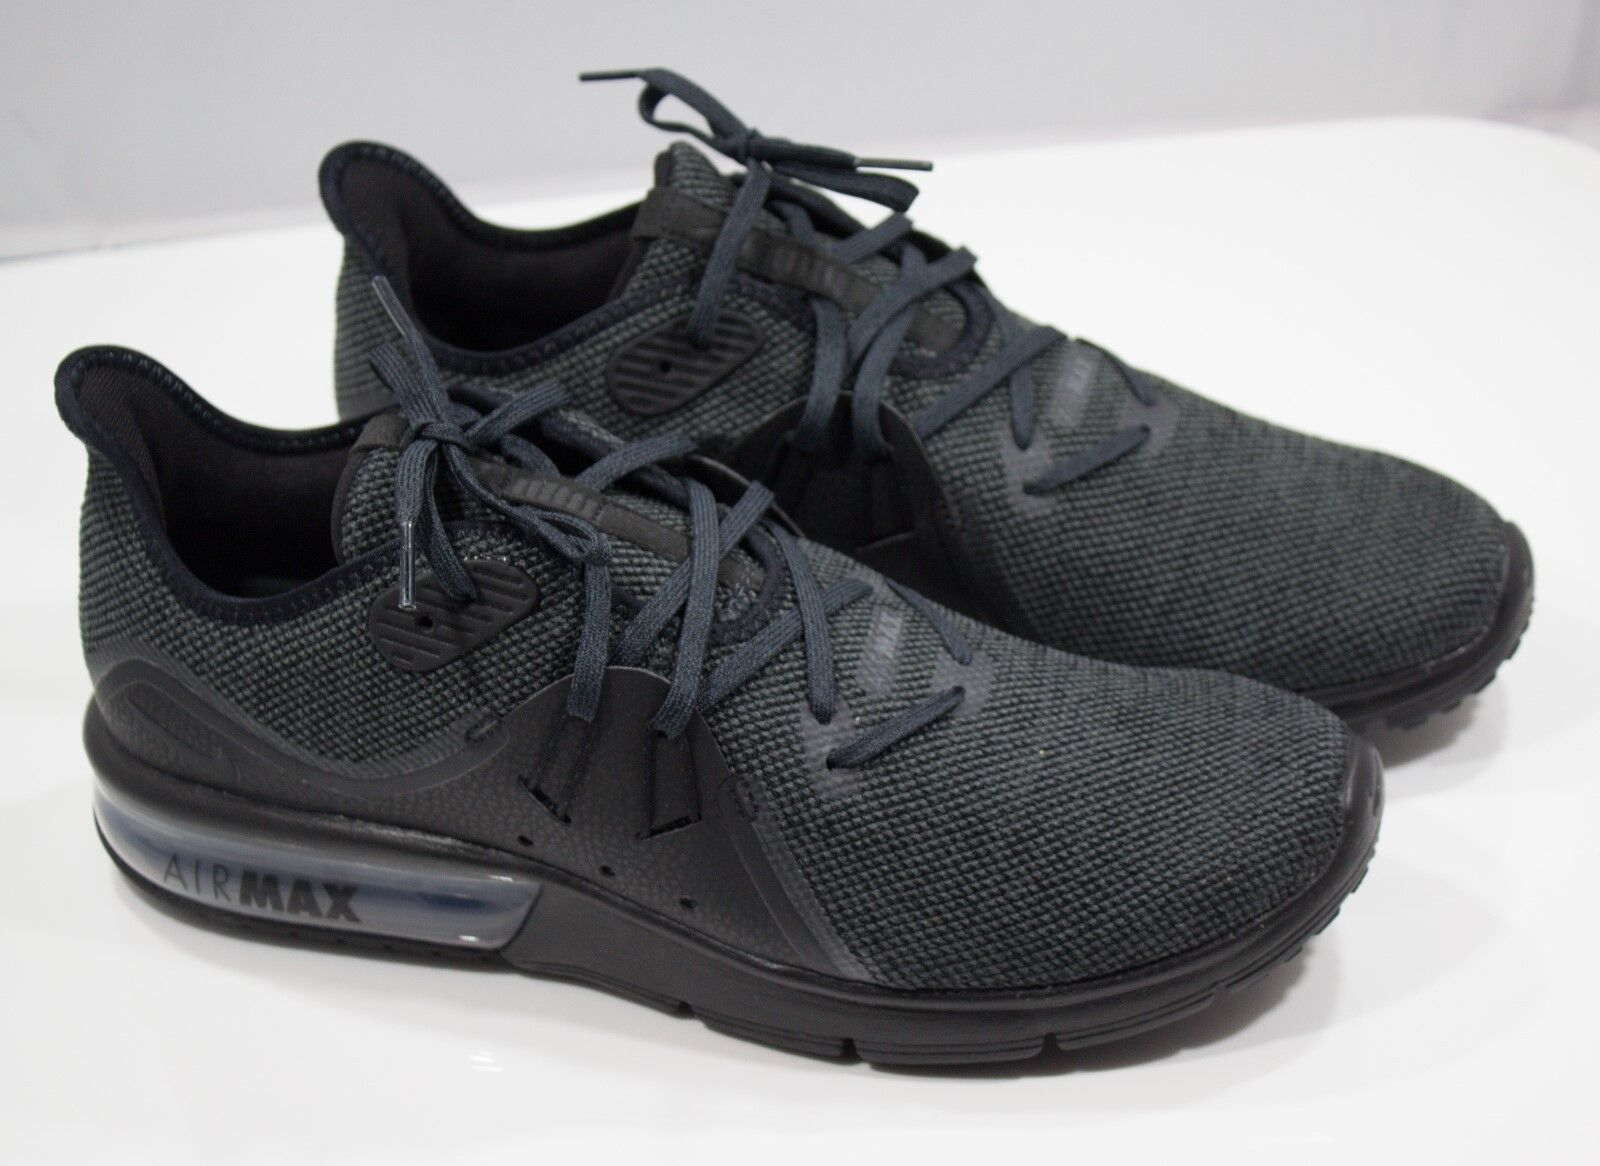 NIKE AIR MAX Sequent 3    921694 010. Size 12 US Fast Free Shipping REAL PICTURES 34f3a1